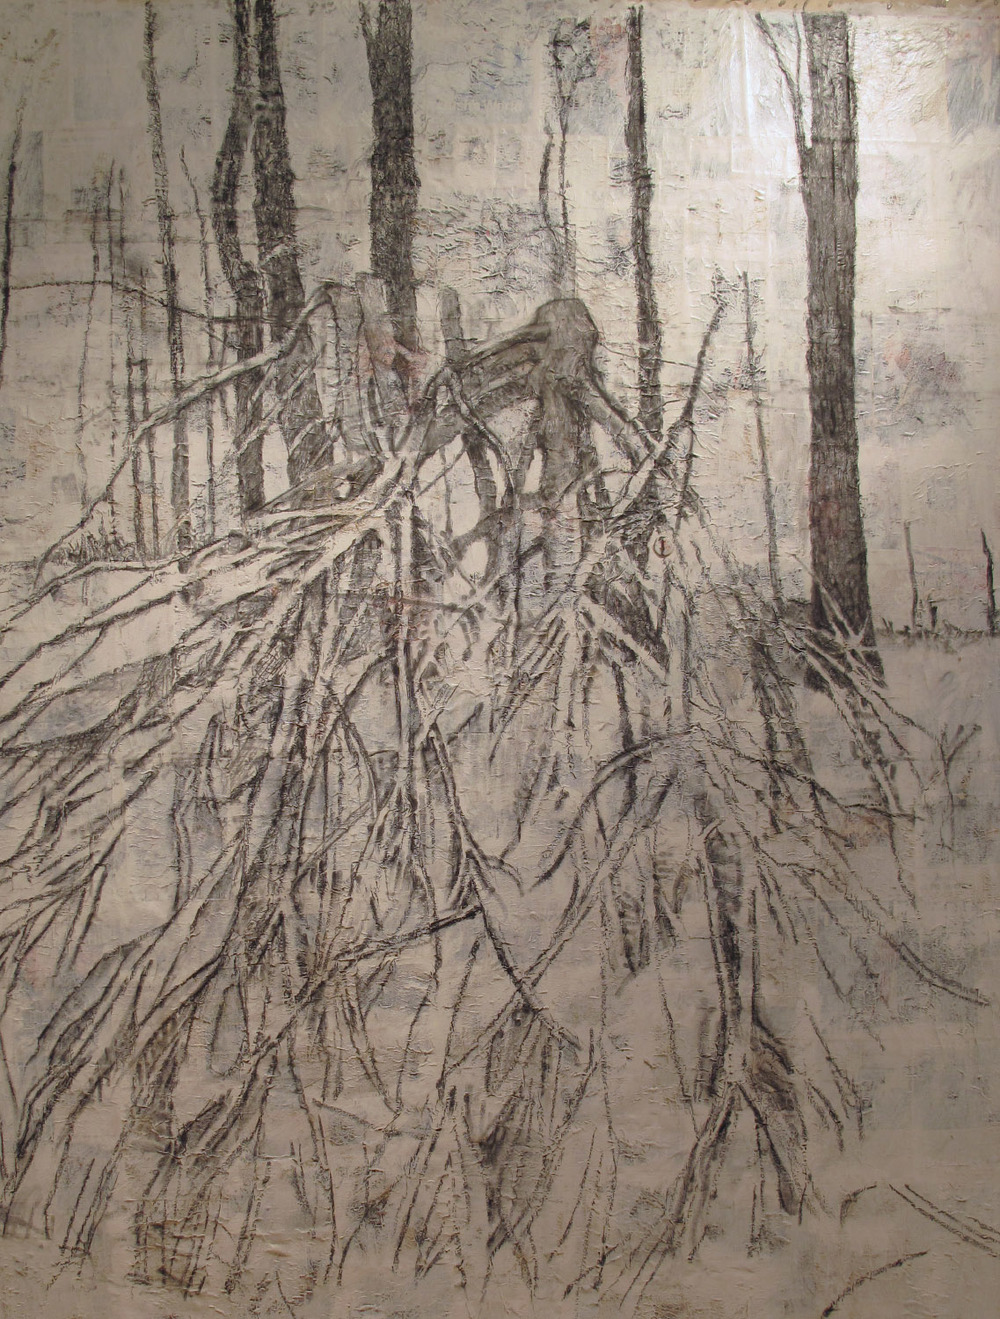 2ah(0), charcoal, gesso, print media collage on canvas, 96x78 in. 2001.jpg